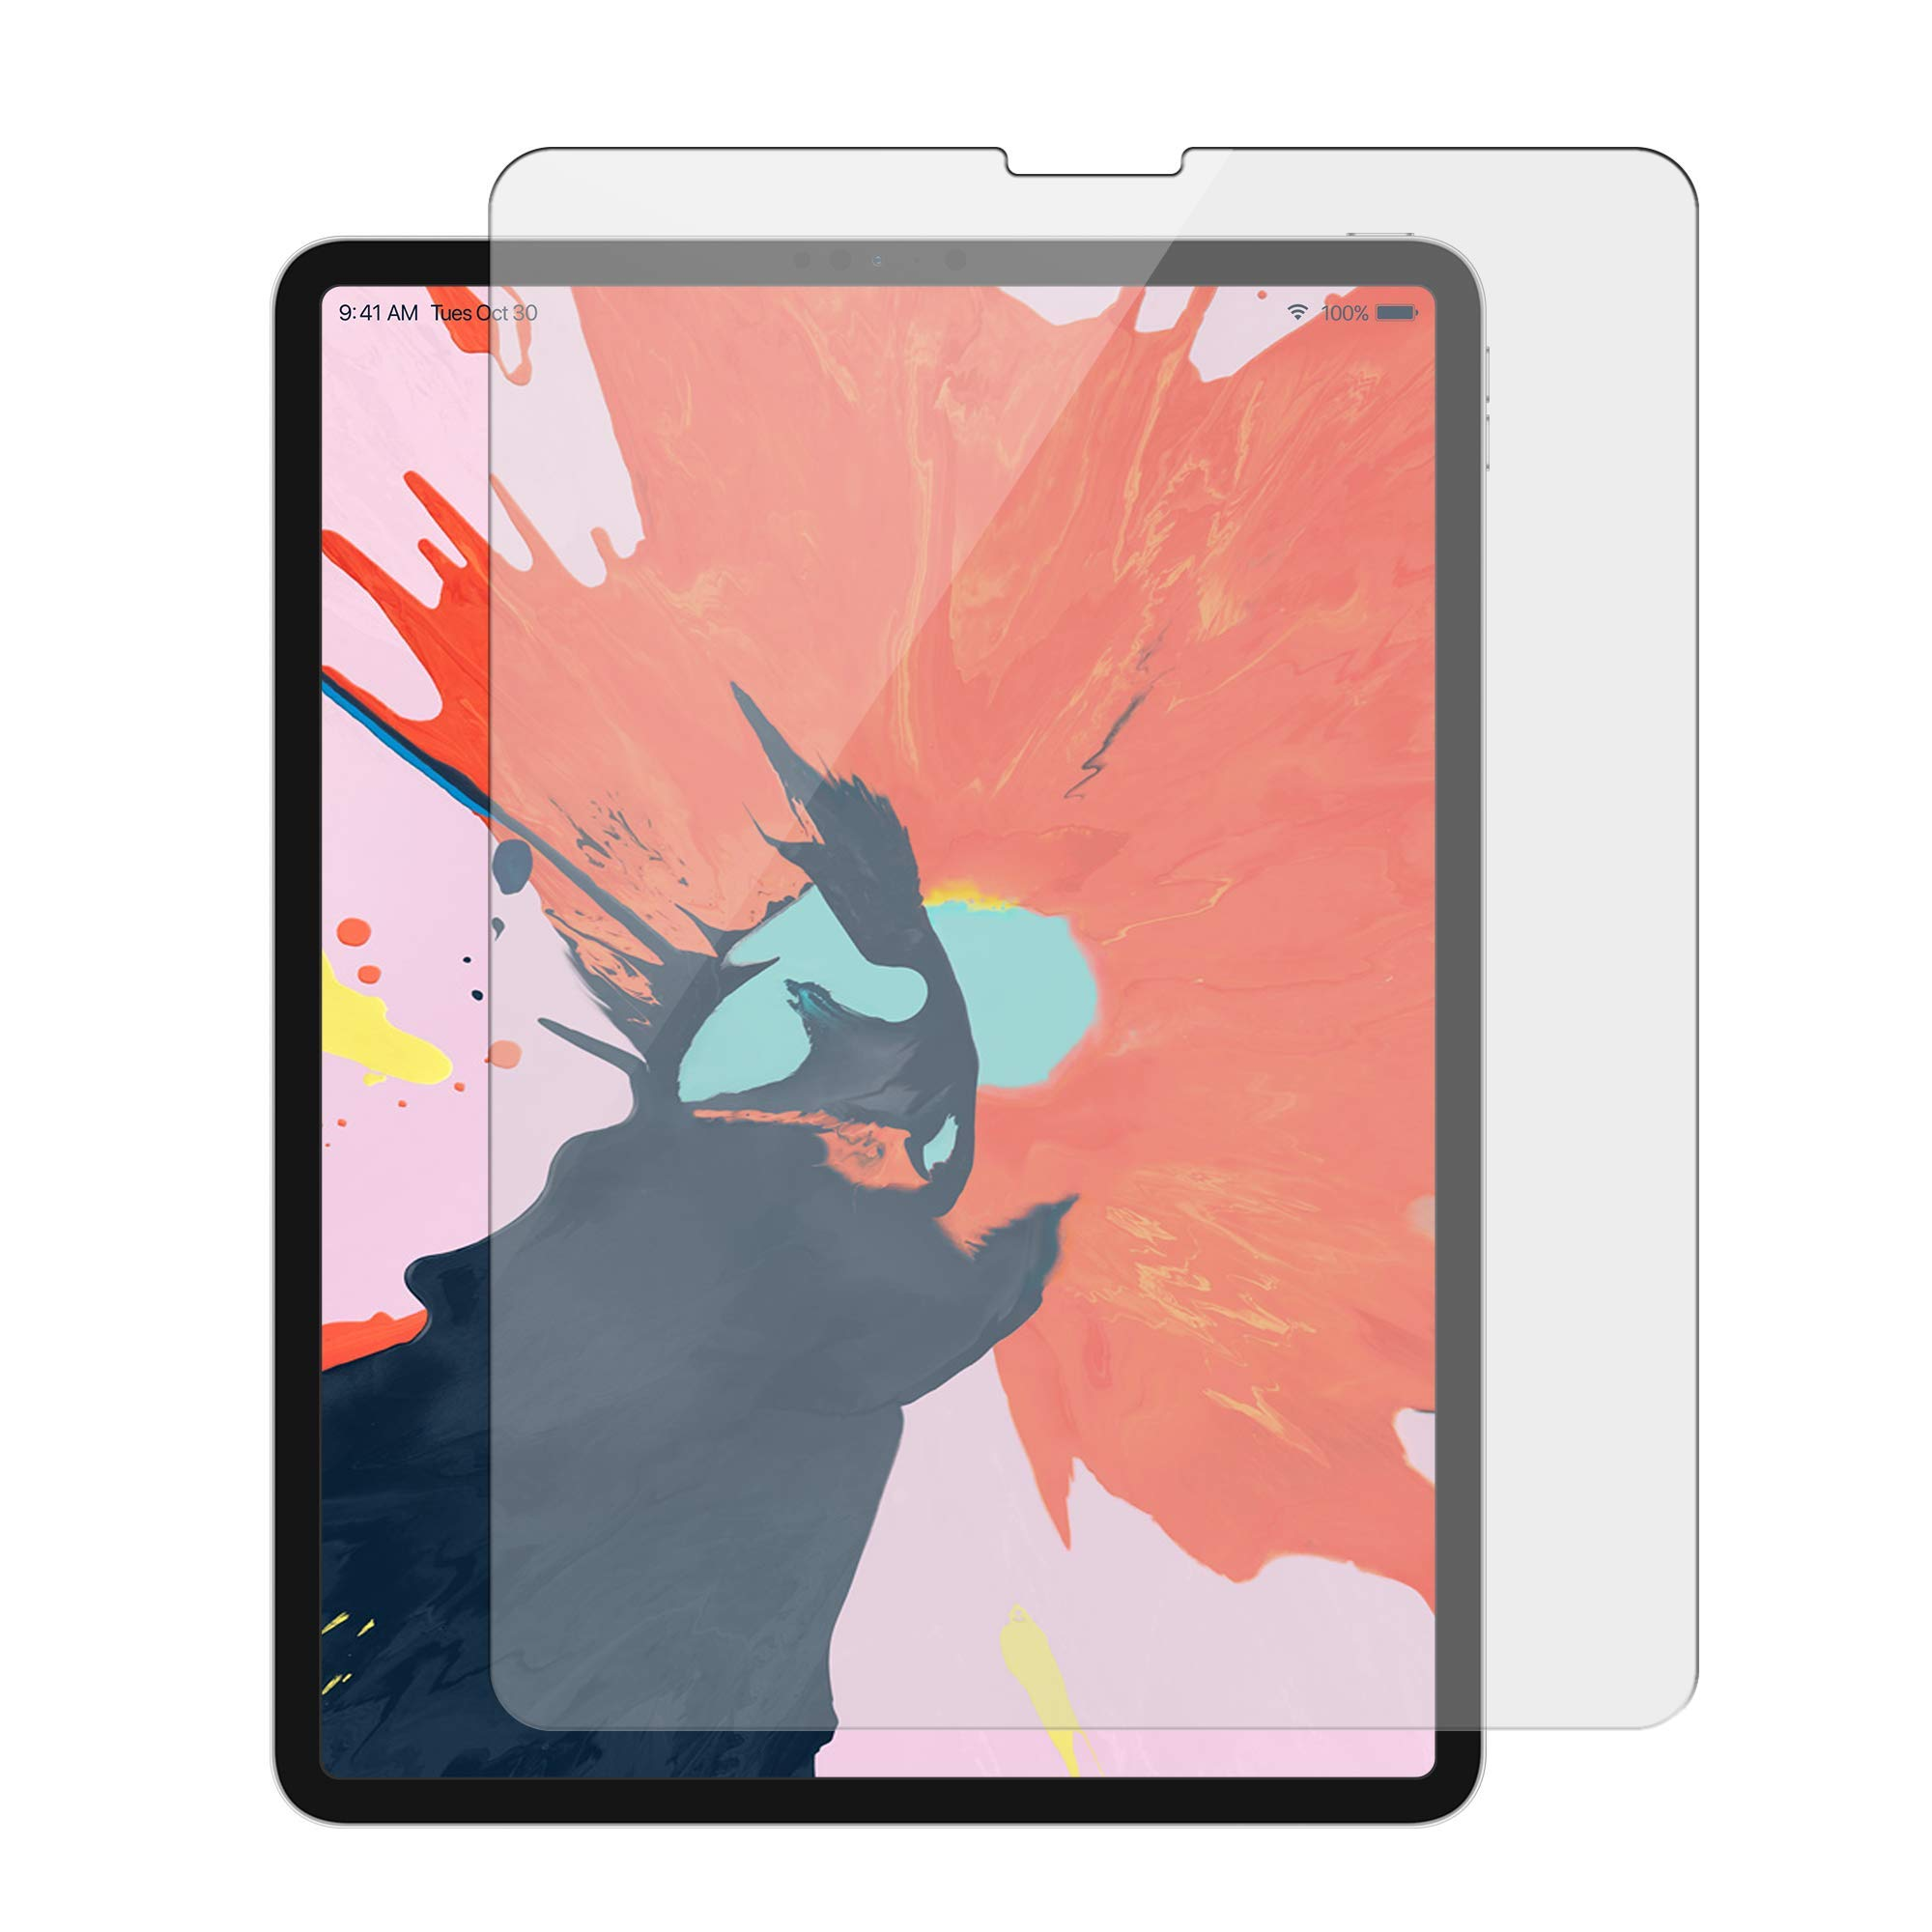 Targus Tempered Glass Screen Protector for iPad Pro 12.9-Inch, Clear (AWV144TGL)